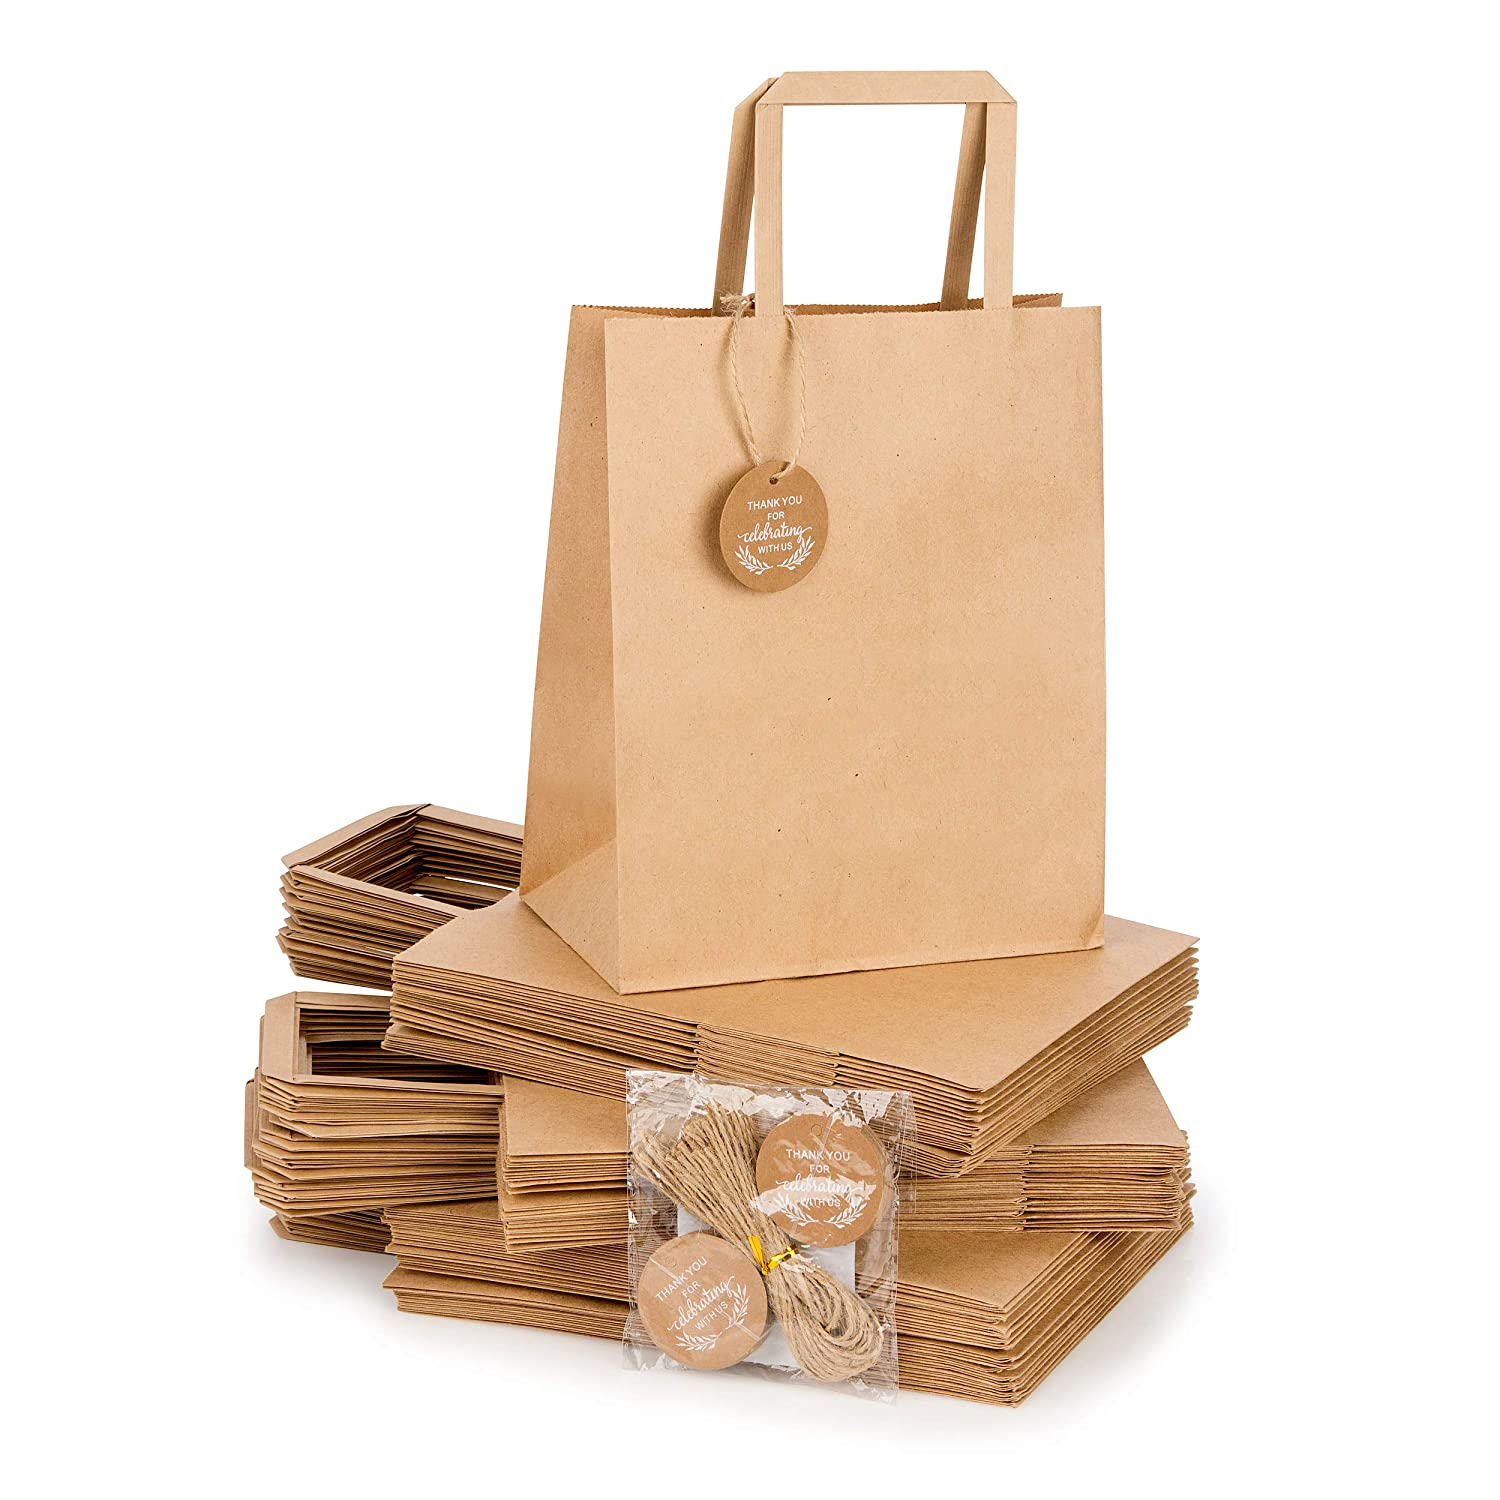 Kraft Paper Bags Bulk with Handles and Printed Thank-You Design for Gifts, Wedding Welcome, Merchandise, Party, Reception, Business, Craft Fair, Goodies, Retail | Set of 50 pcs, Medium 8x4.75x10 inch Kraft Nature